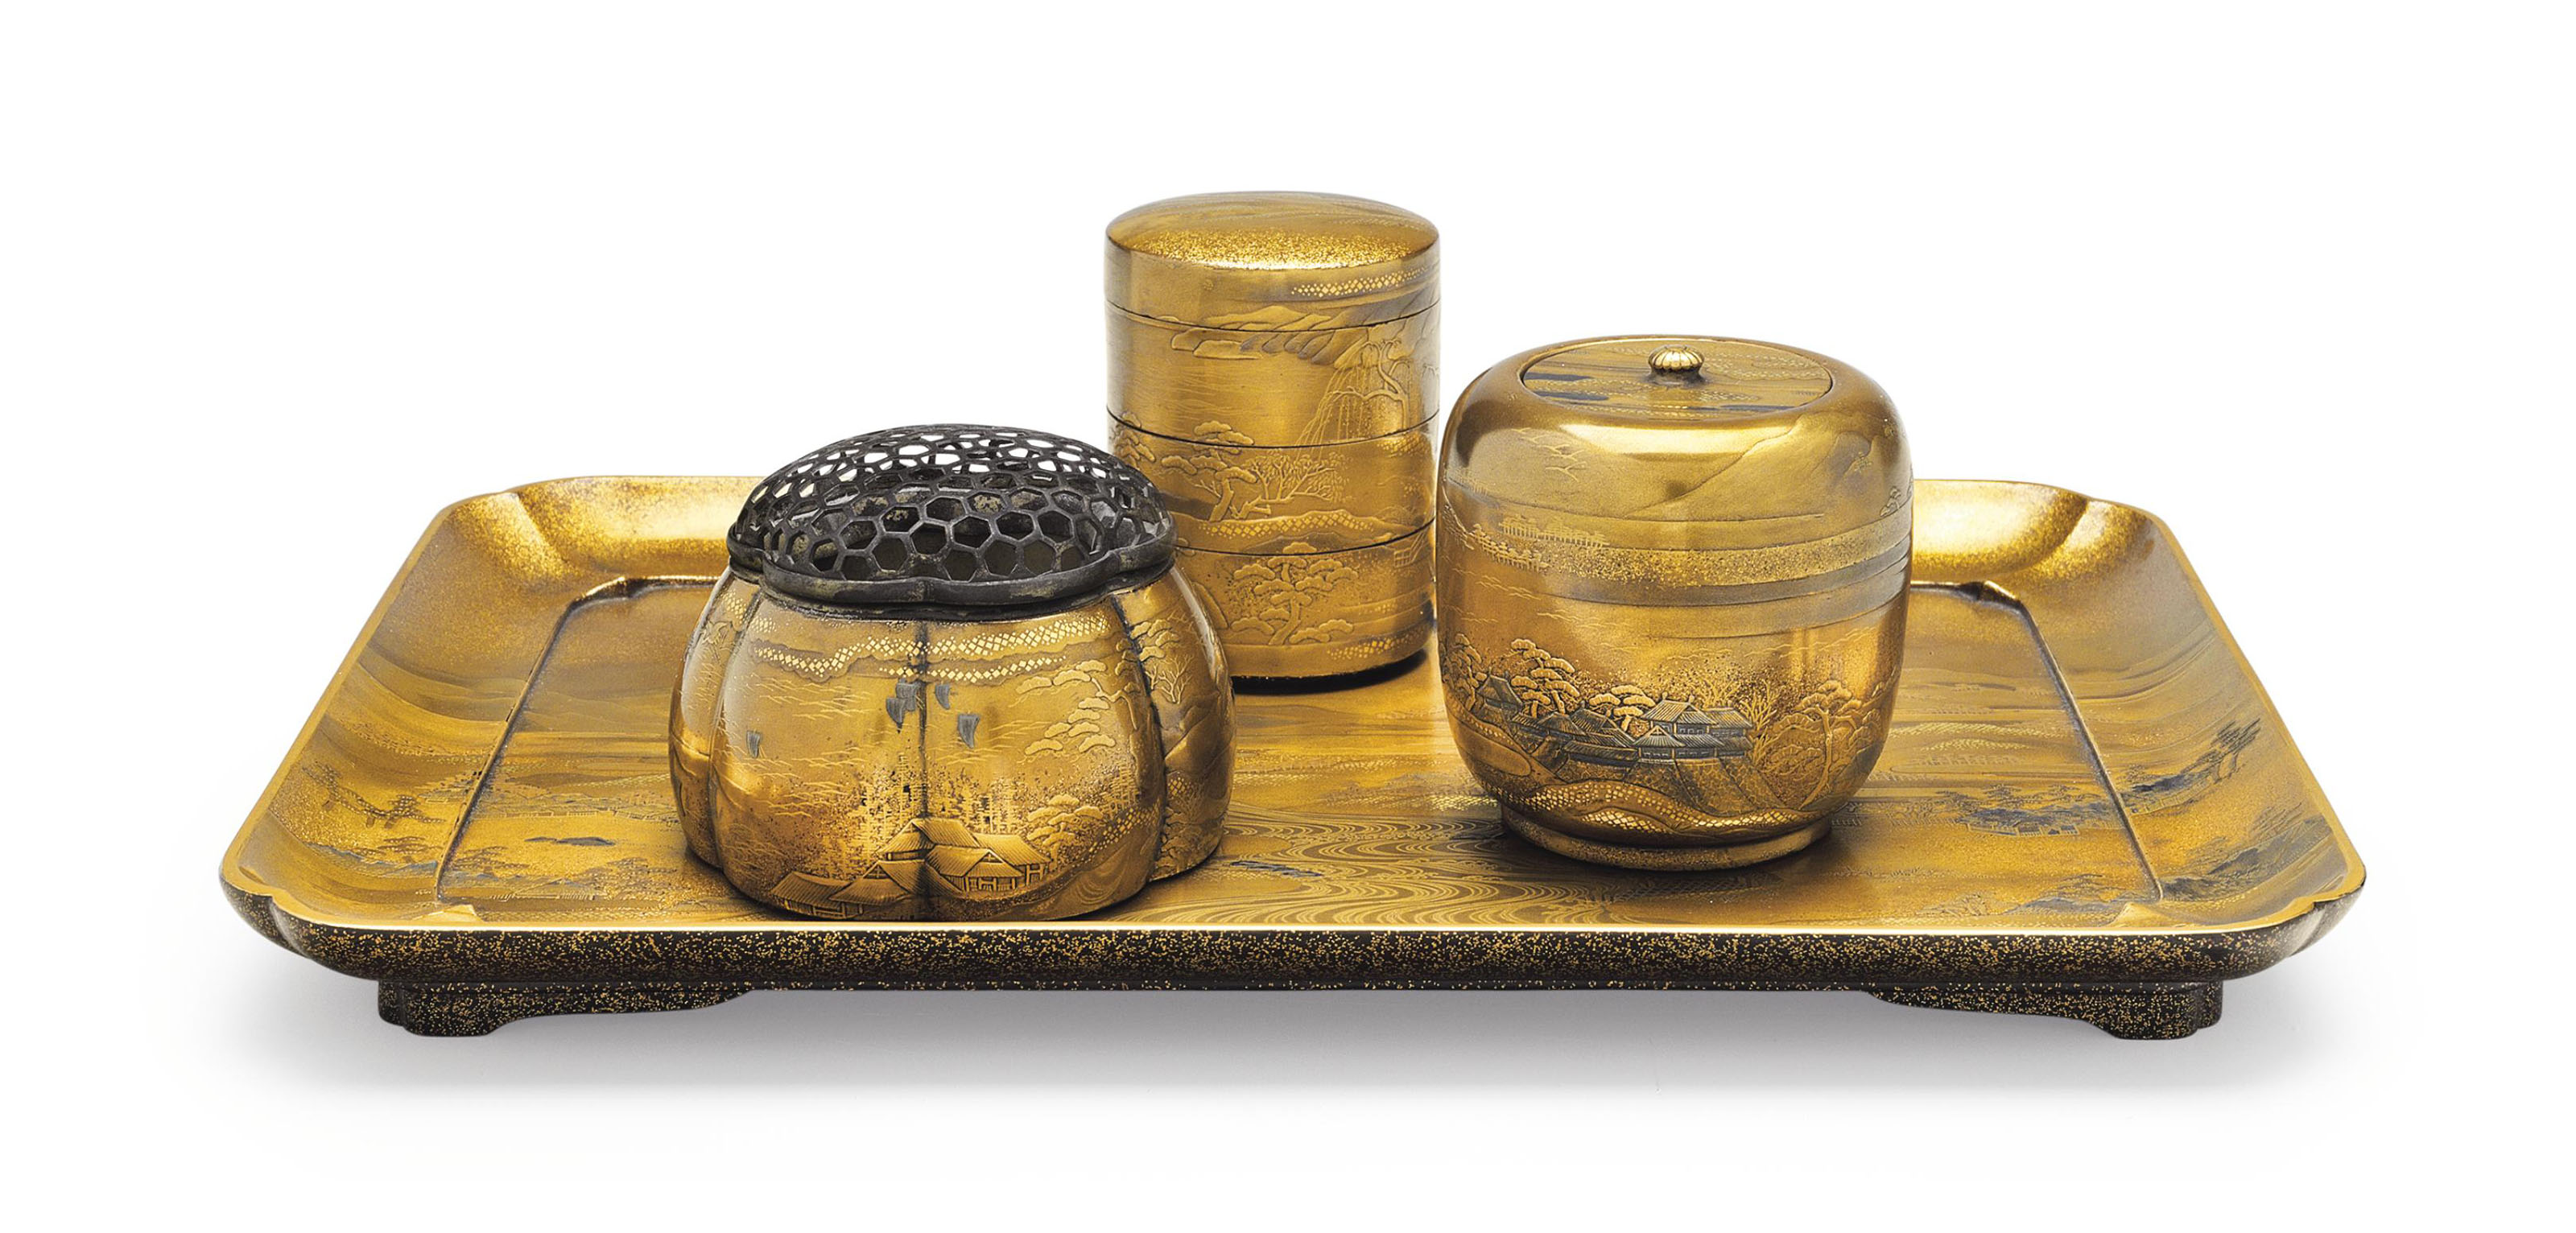 A set of four lacquer utensils